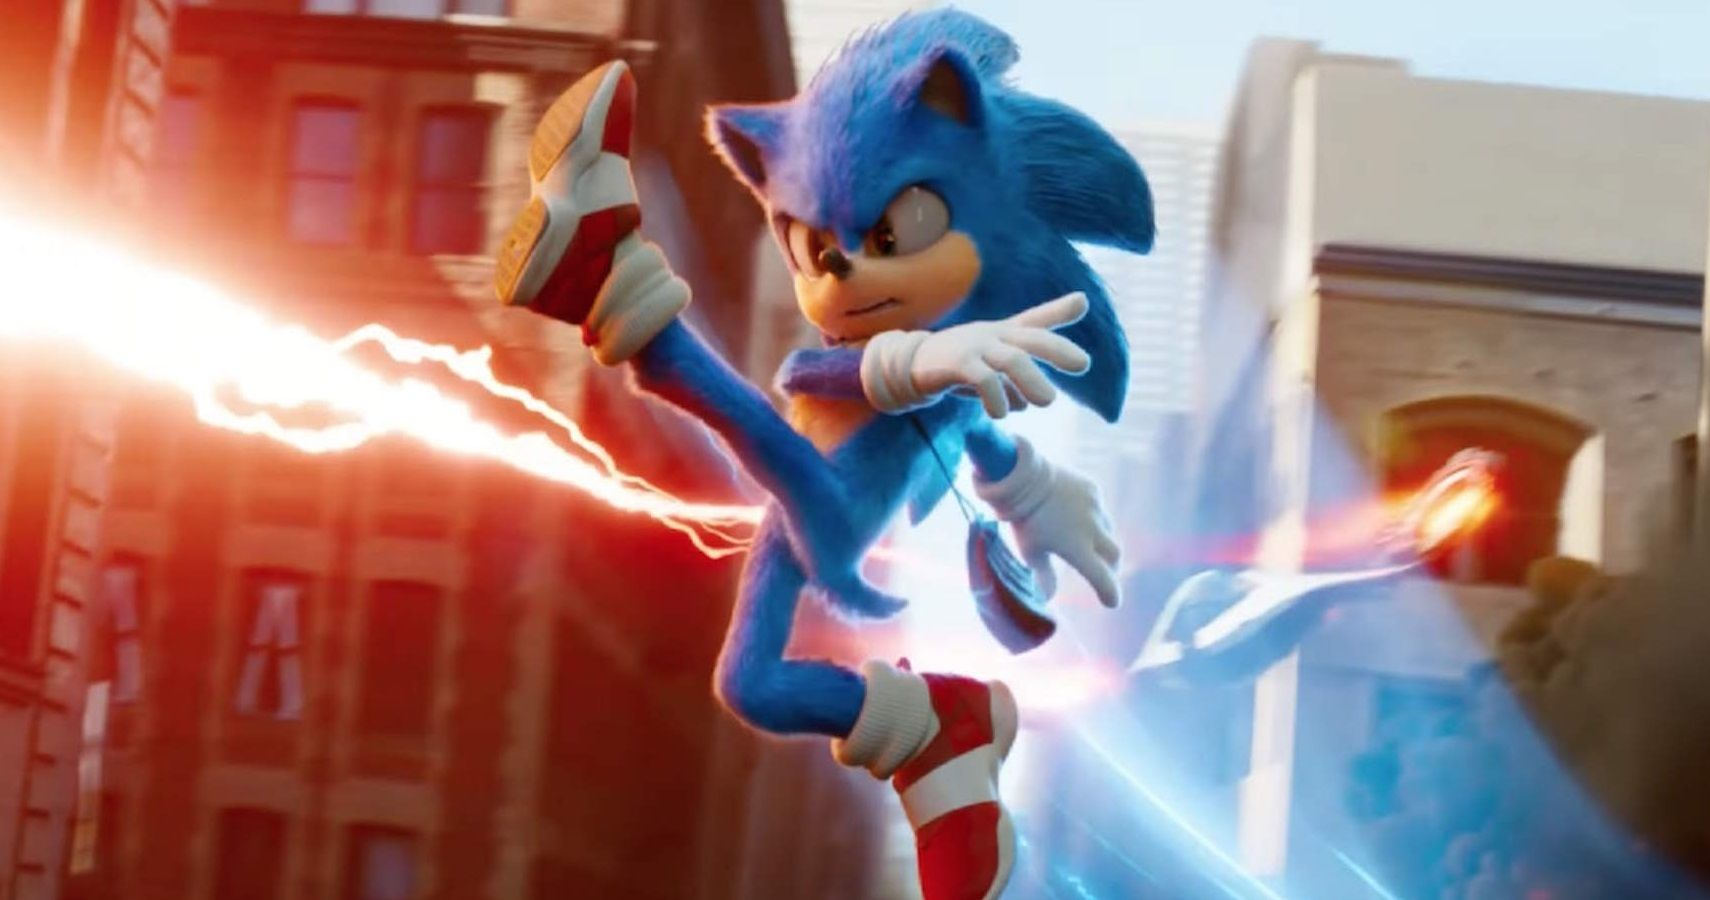 10 Things Everyone Completely Missed In The Sonic The Hedgehog Movie